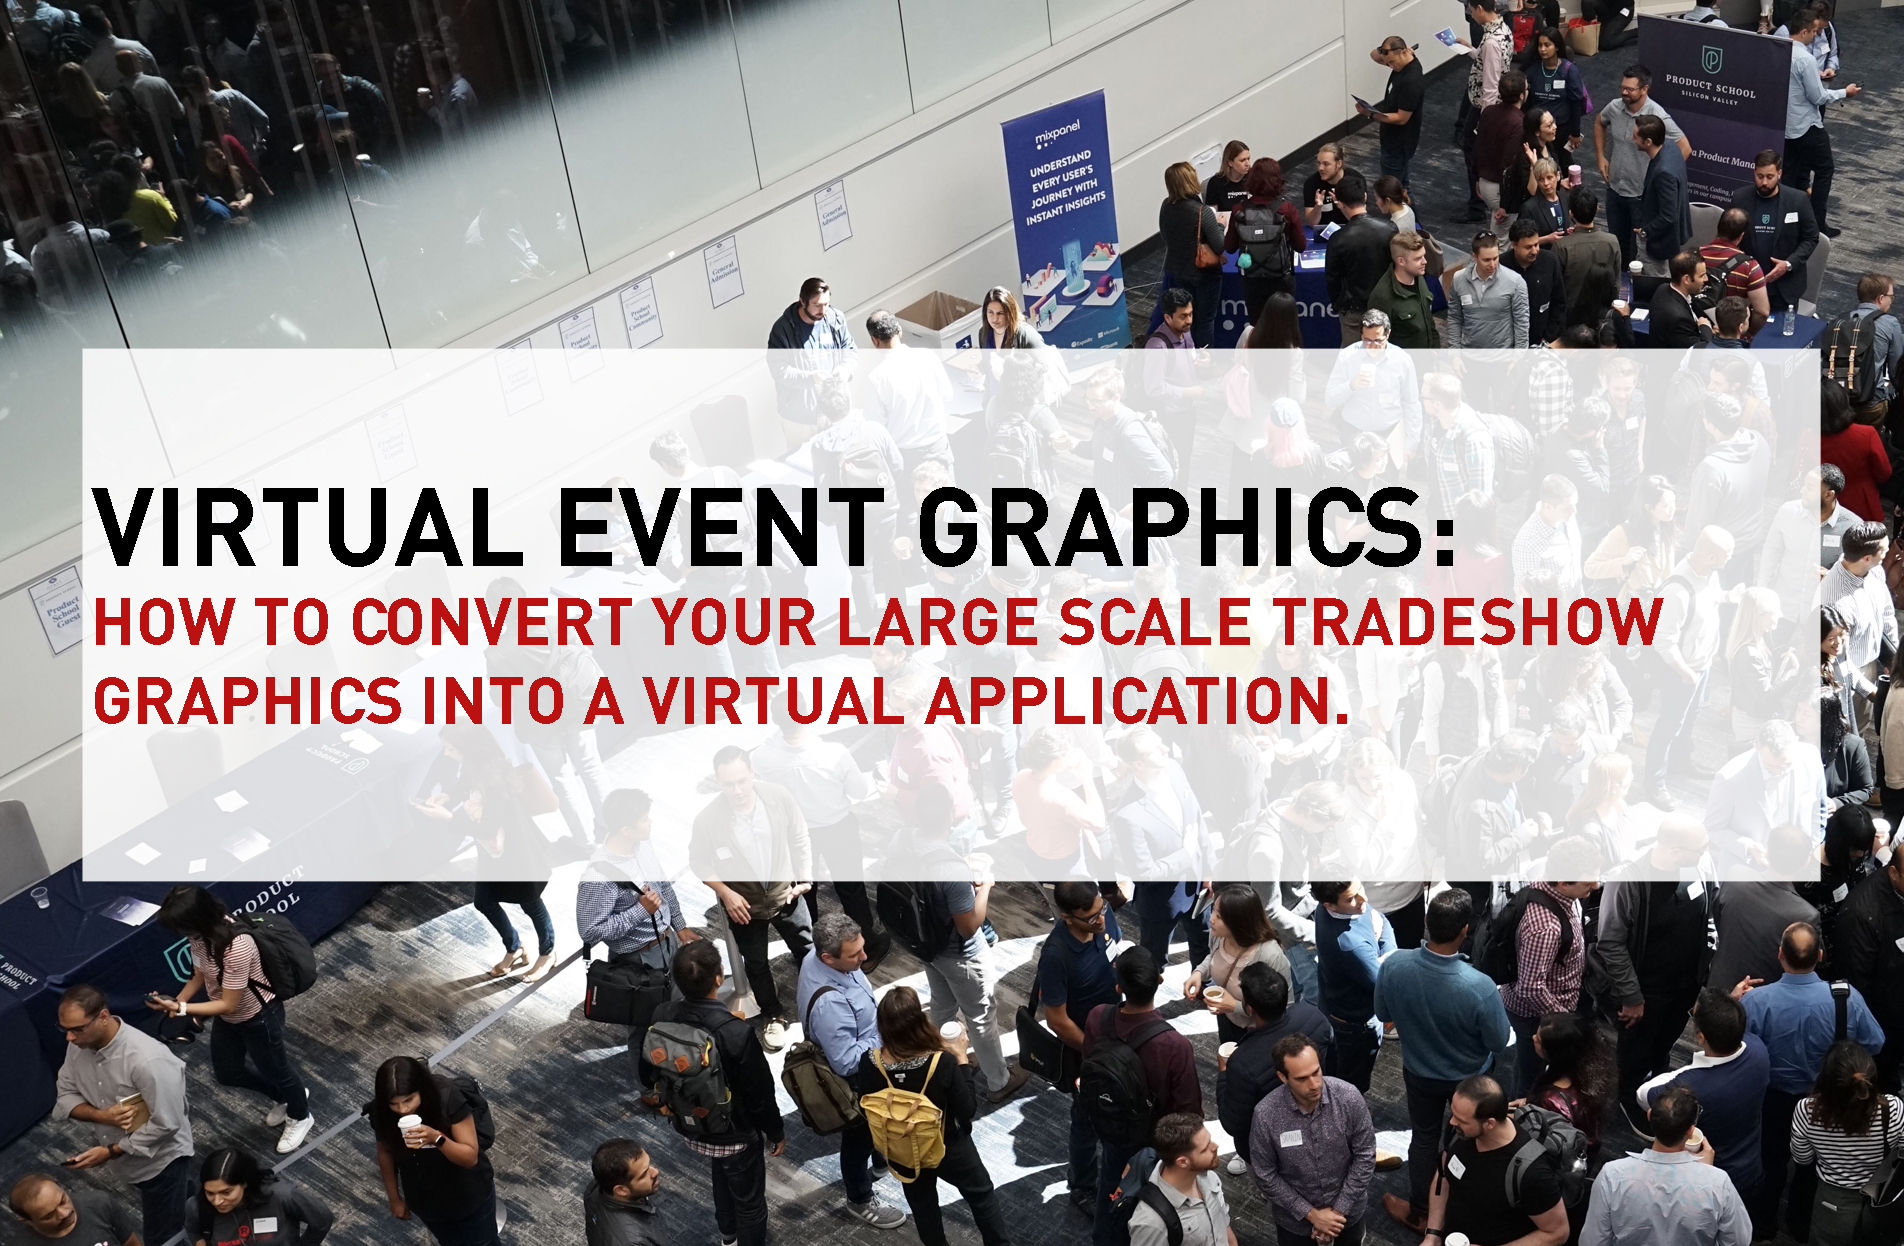 virtual event graphics text over crowd